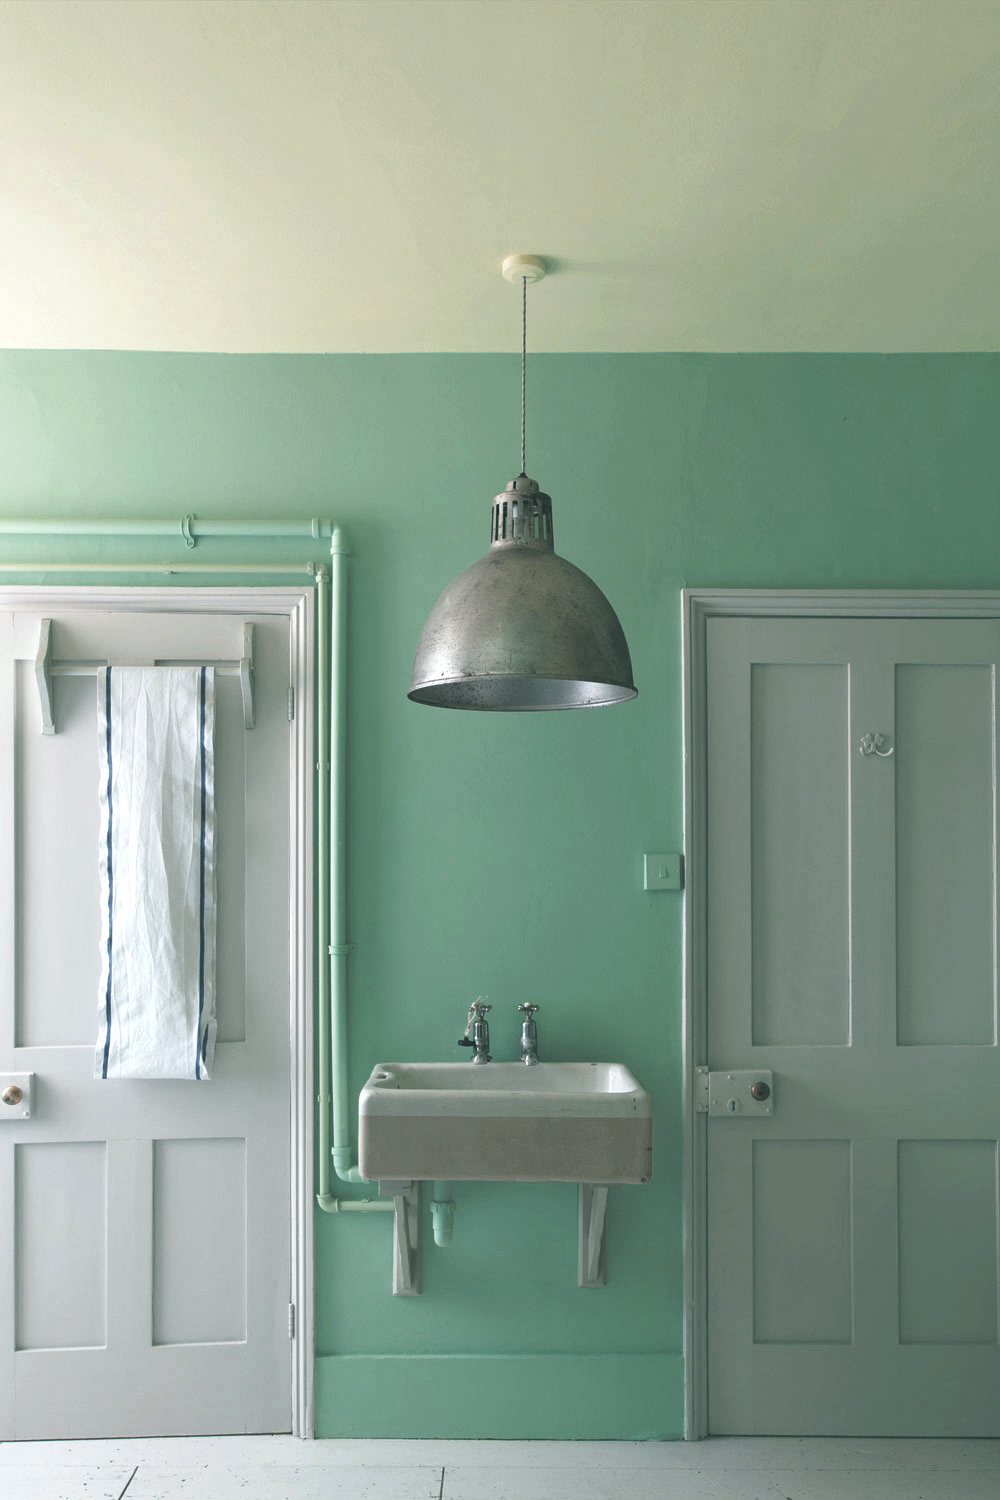 SAY IT WITH PAINT - Paint is a great way to embrace a bolder colour palette without committing long-term; when trends change, simply grab a paintbrush and update the entire look of your room in an instant. For now, we're all for mint commanding every inch of our wall space. Farrow & Ball's Arsenic looks great set against white accents and industrial accessories.Looking for a very specific shade of mint? Then head to Benjamin Moore for hundreds of options...be warned, you will find it almost impossible to choose between all of the beautiful shades! Our favourites are Antigua Aqua, Bud Green and Flordia Keys.